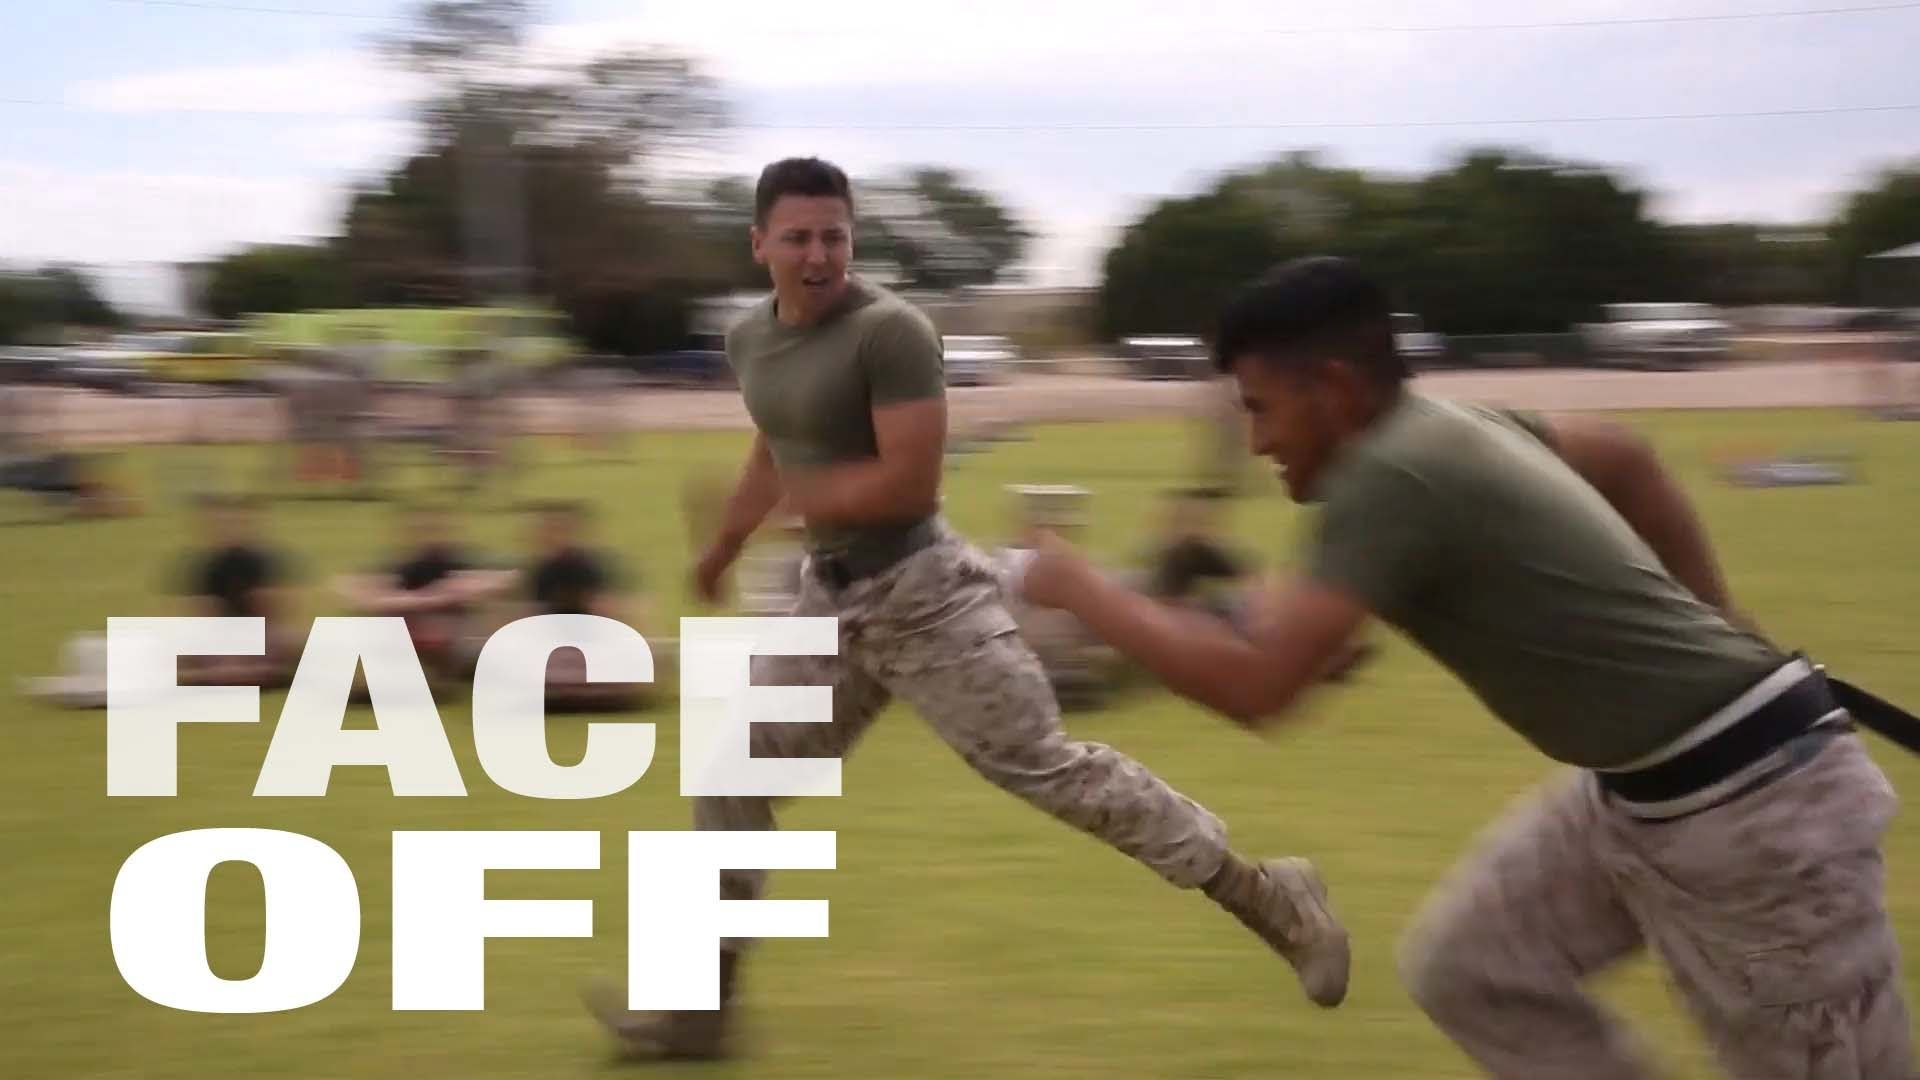 Marines Face Off for Field Meet